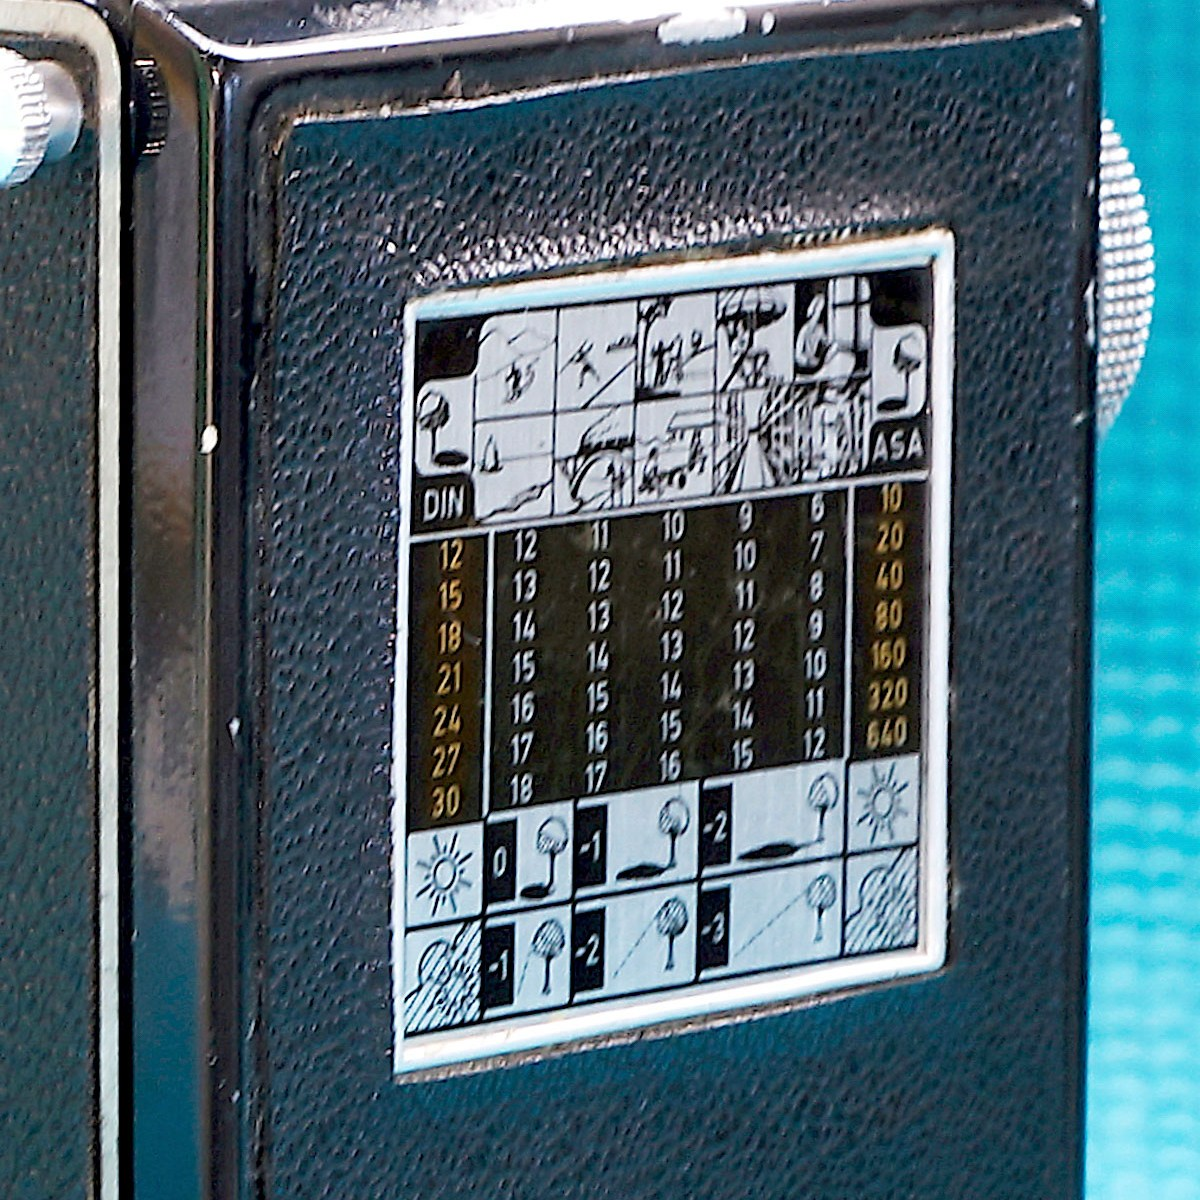 Flexaret exposure table